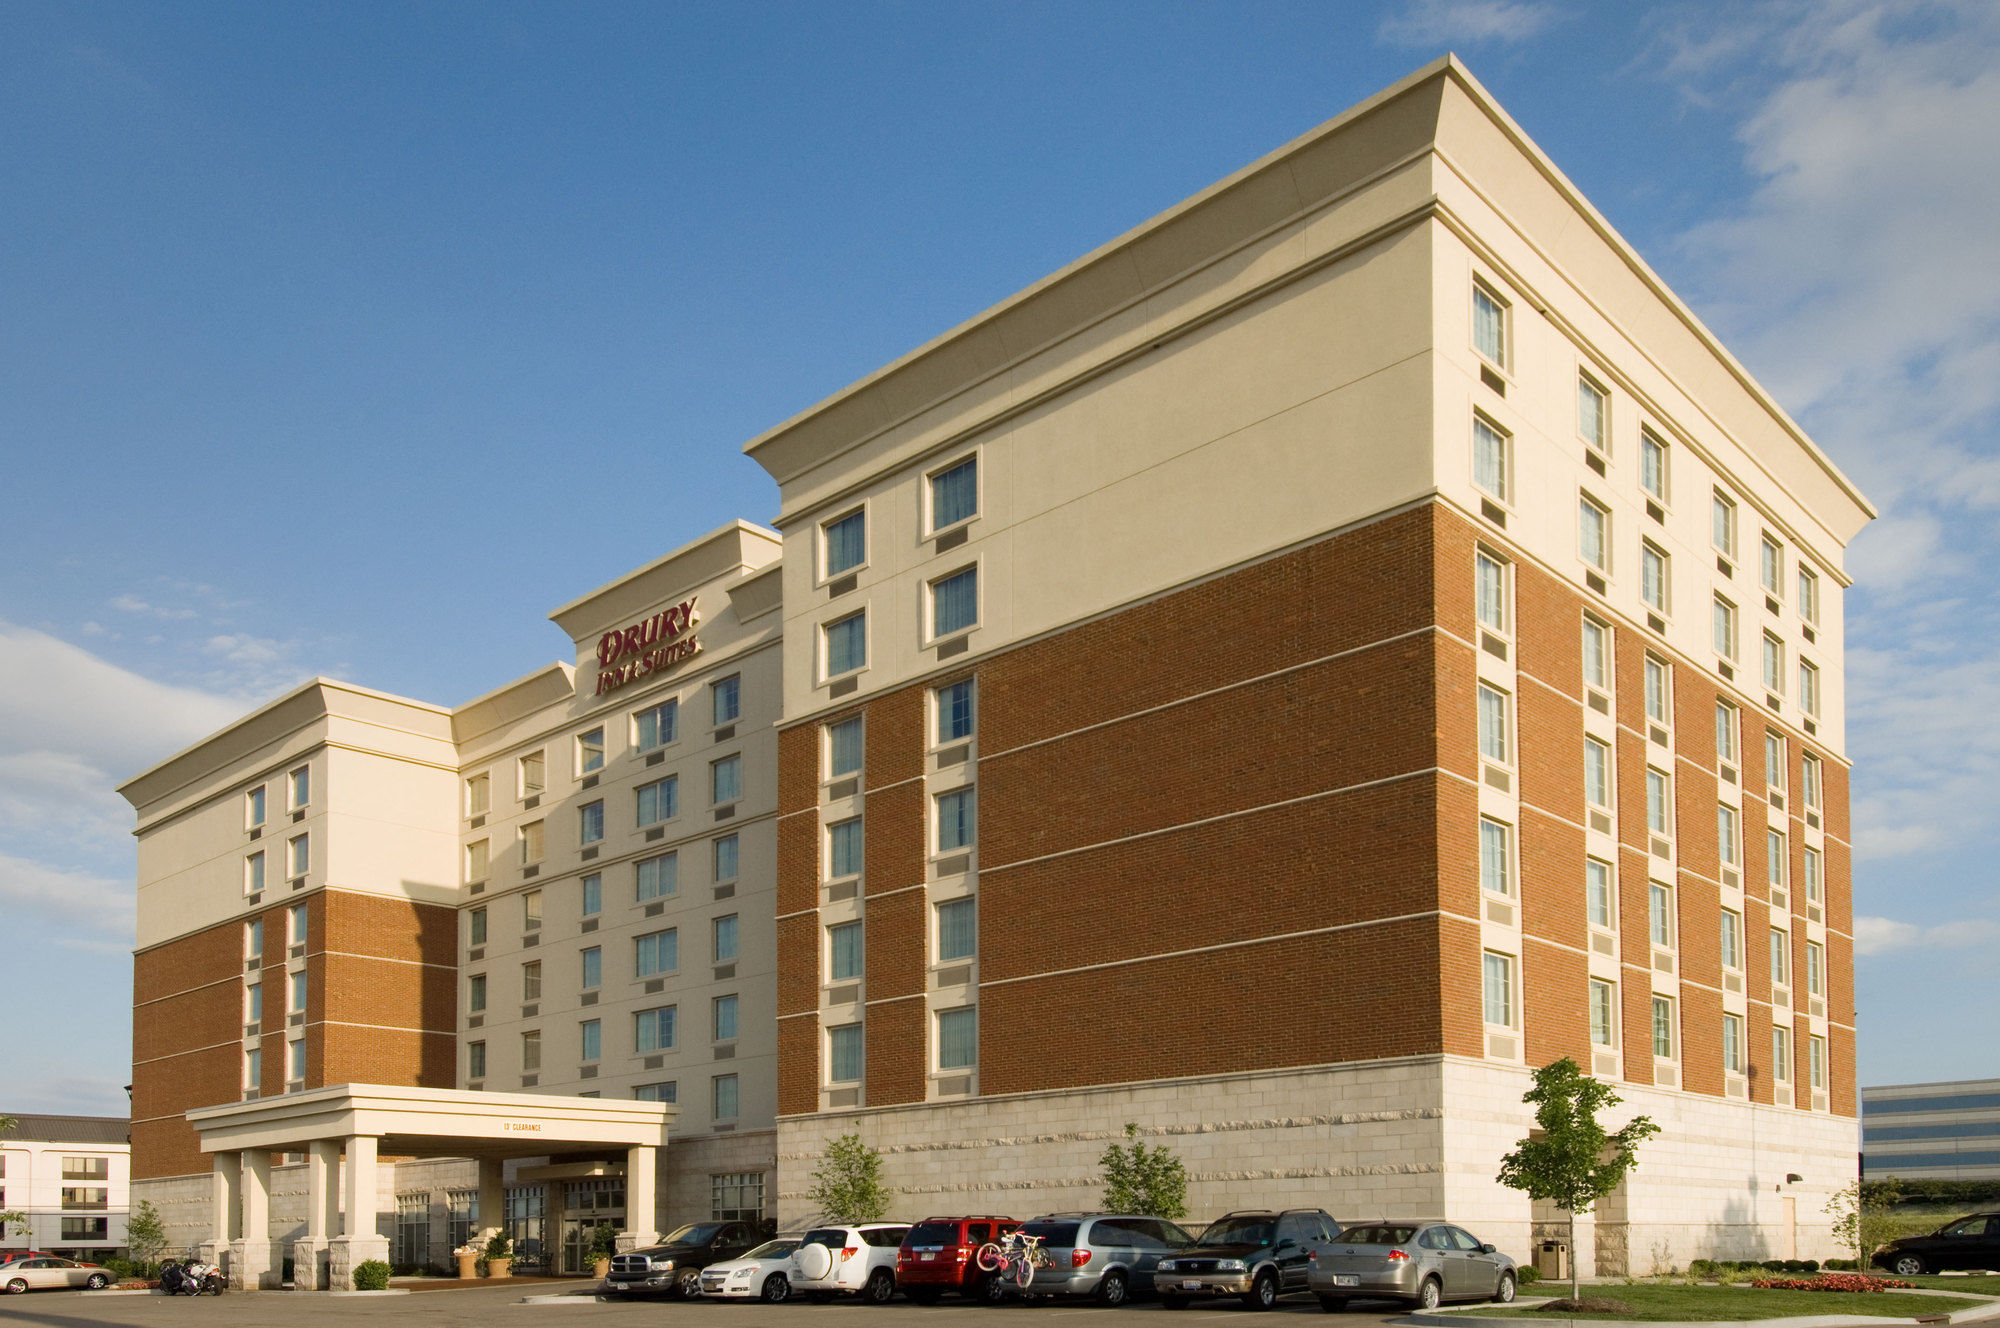 Drury hotels discount coupon code